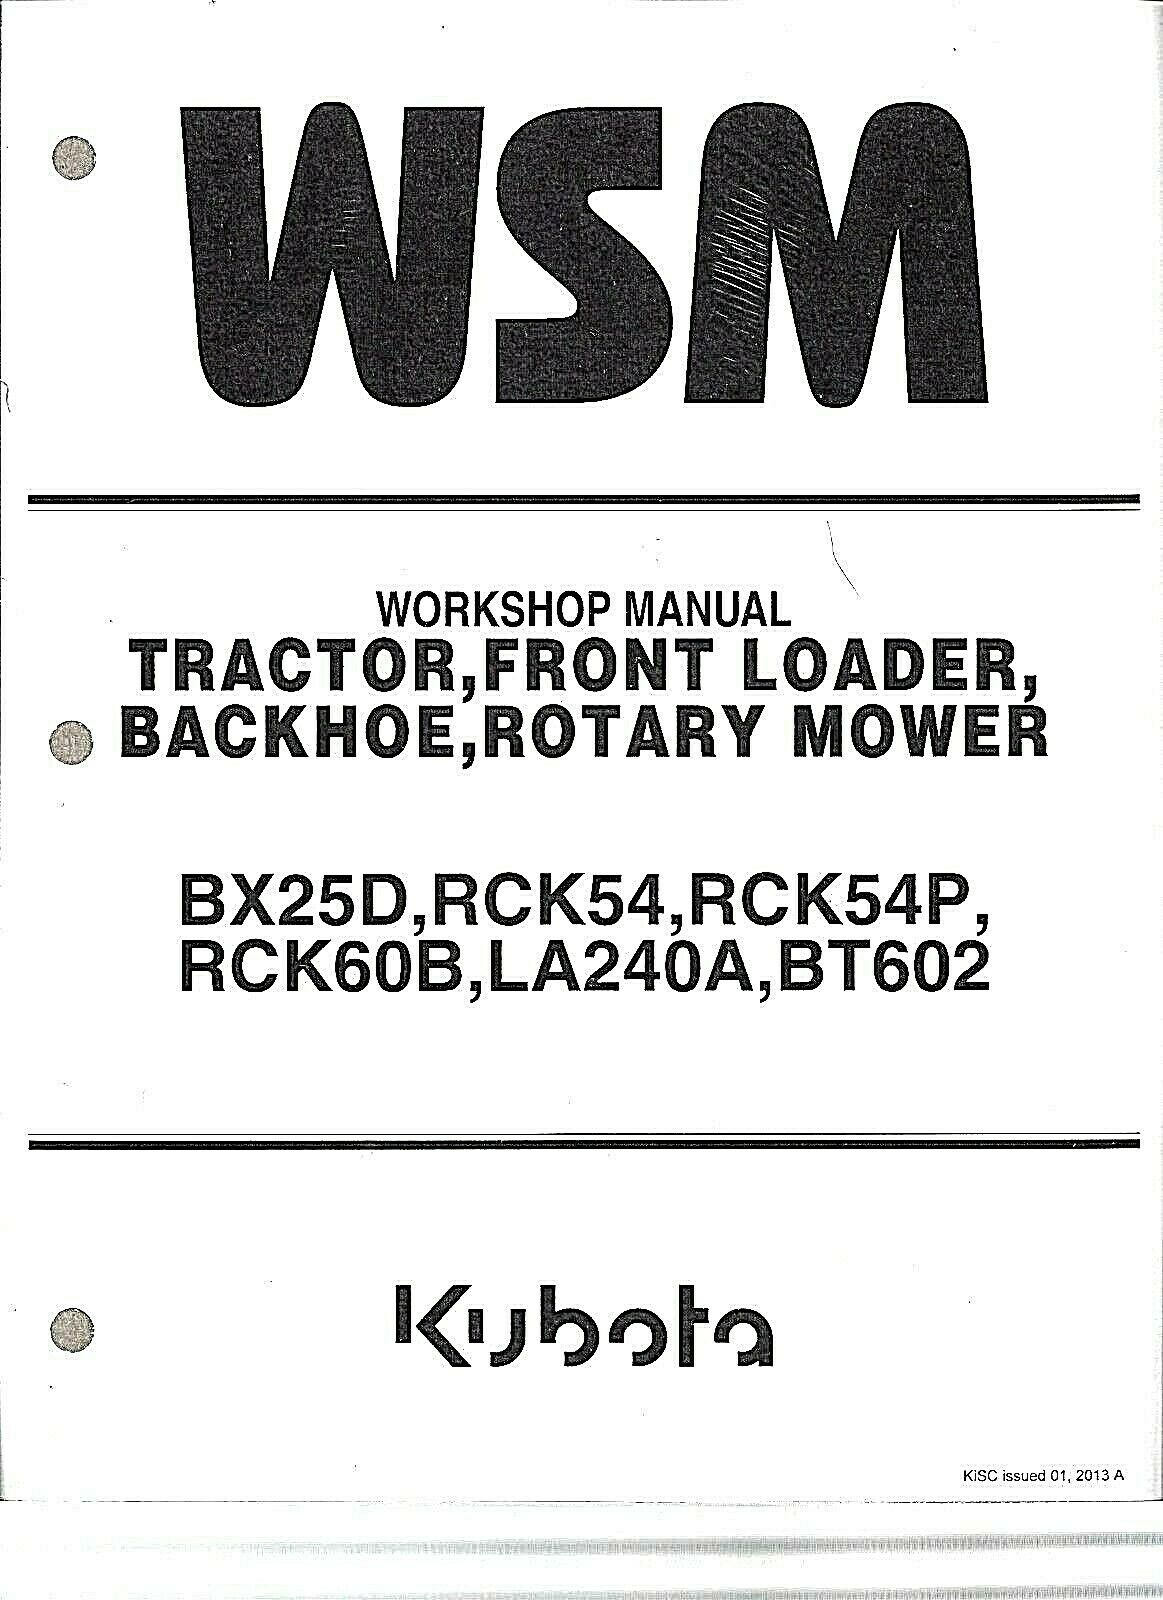 Kubota BX25D Tractor, Loader, Backhoe, Rotary Mower Workshop Manual  9Y111-08570 1 of 1Only 2 available See More